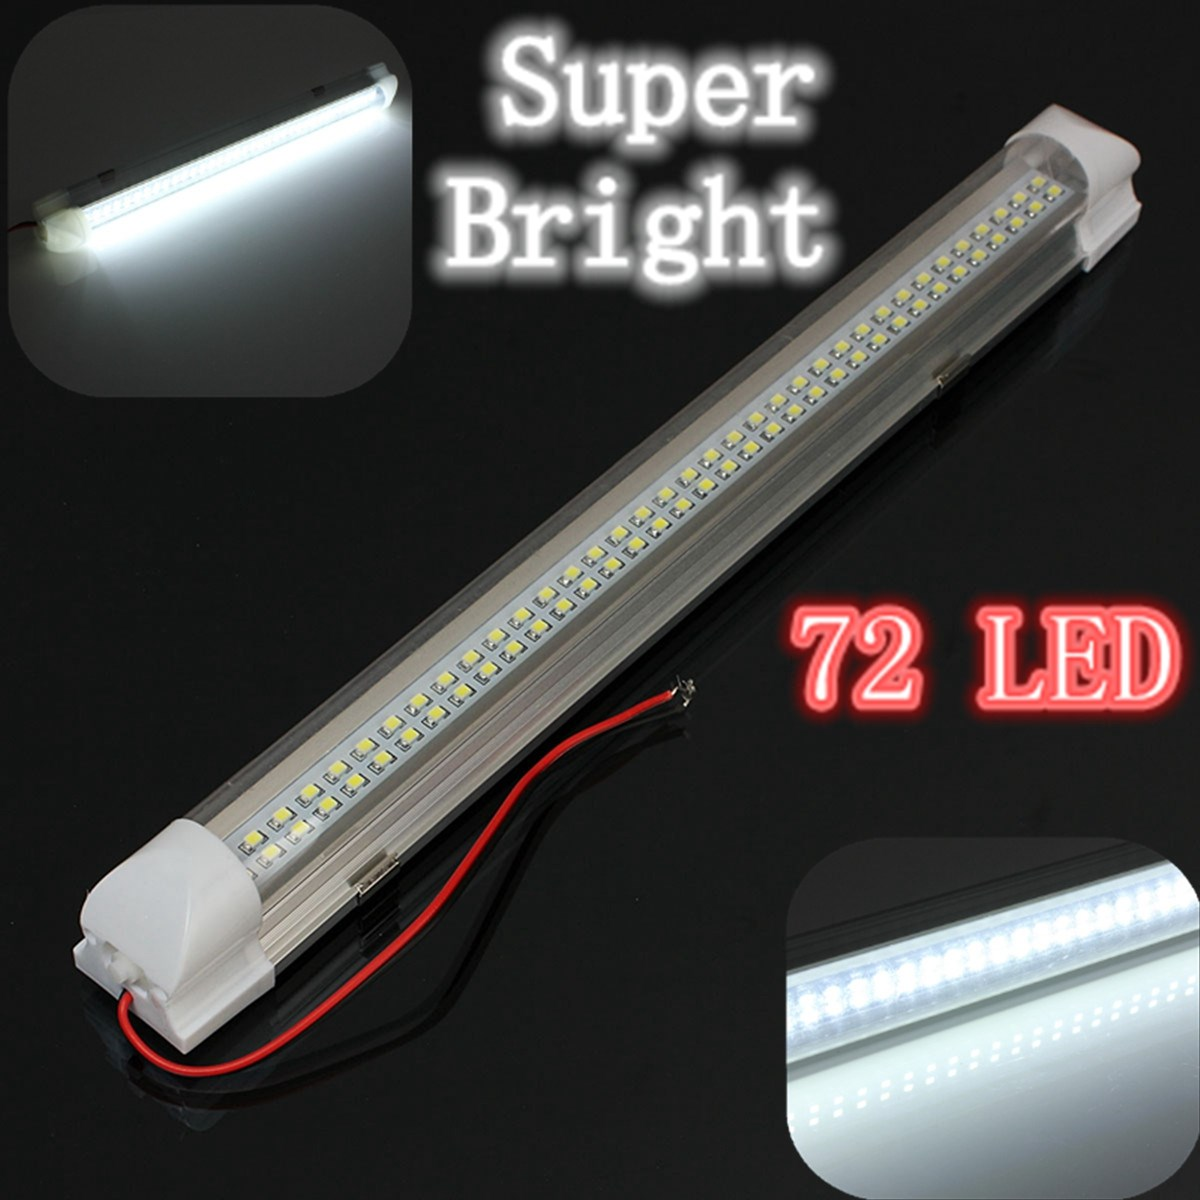 12v universal car auto caravan interior 72 led white light strip bar 340mm lamp on off switch in. Black Bedroom Furniture Sets. Home Design Ideas